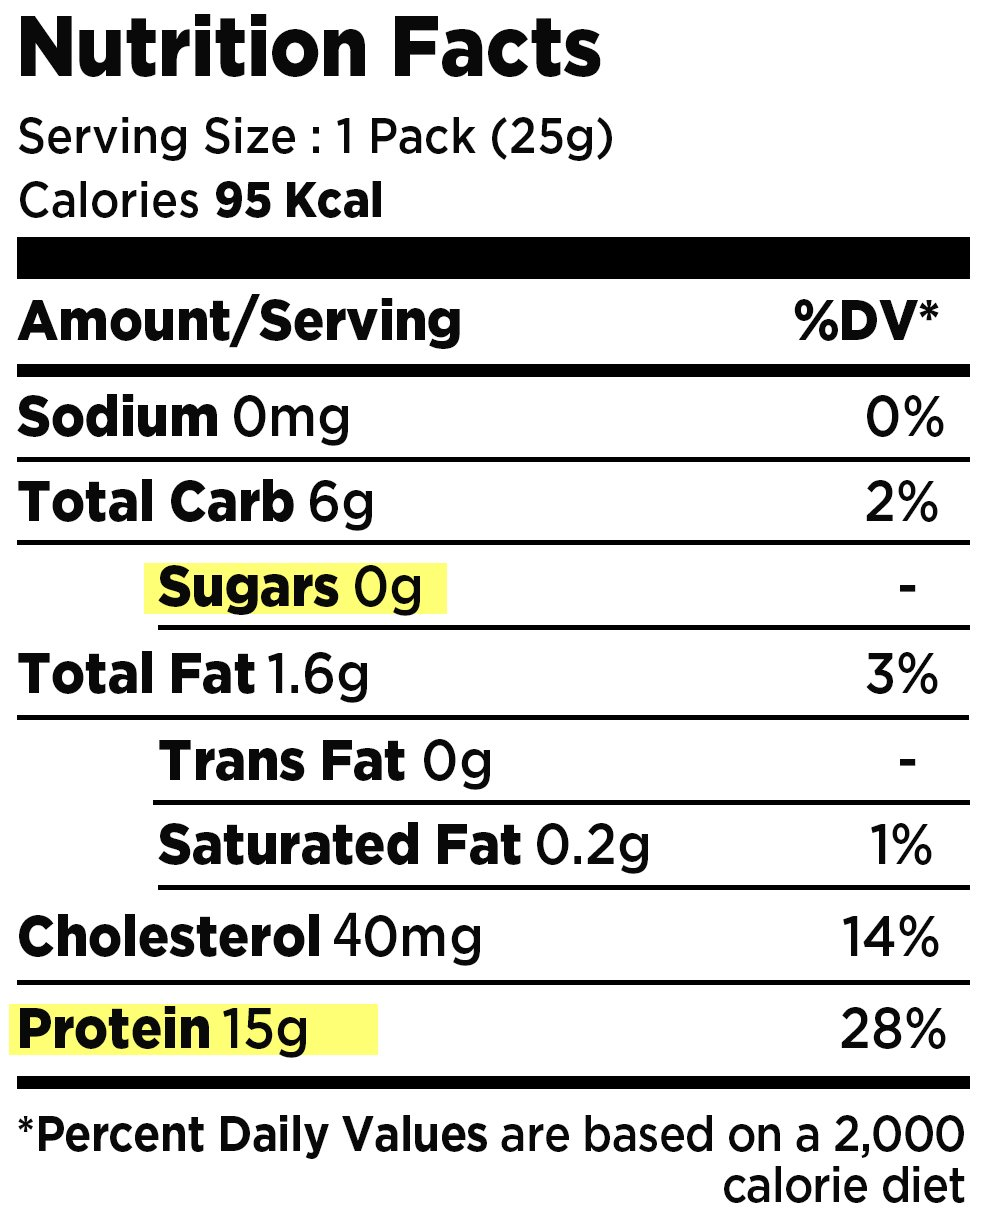 Dano Black Sesame Protein Powder, Single Serve Pouch, No Bottle Needed, Sugar-free, Fat-free, Sodium-free, Meal Replacement, 1 Ounce Pack Pack of 30